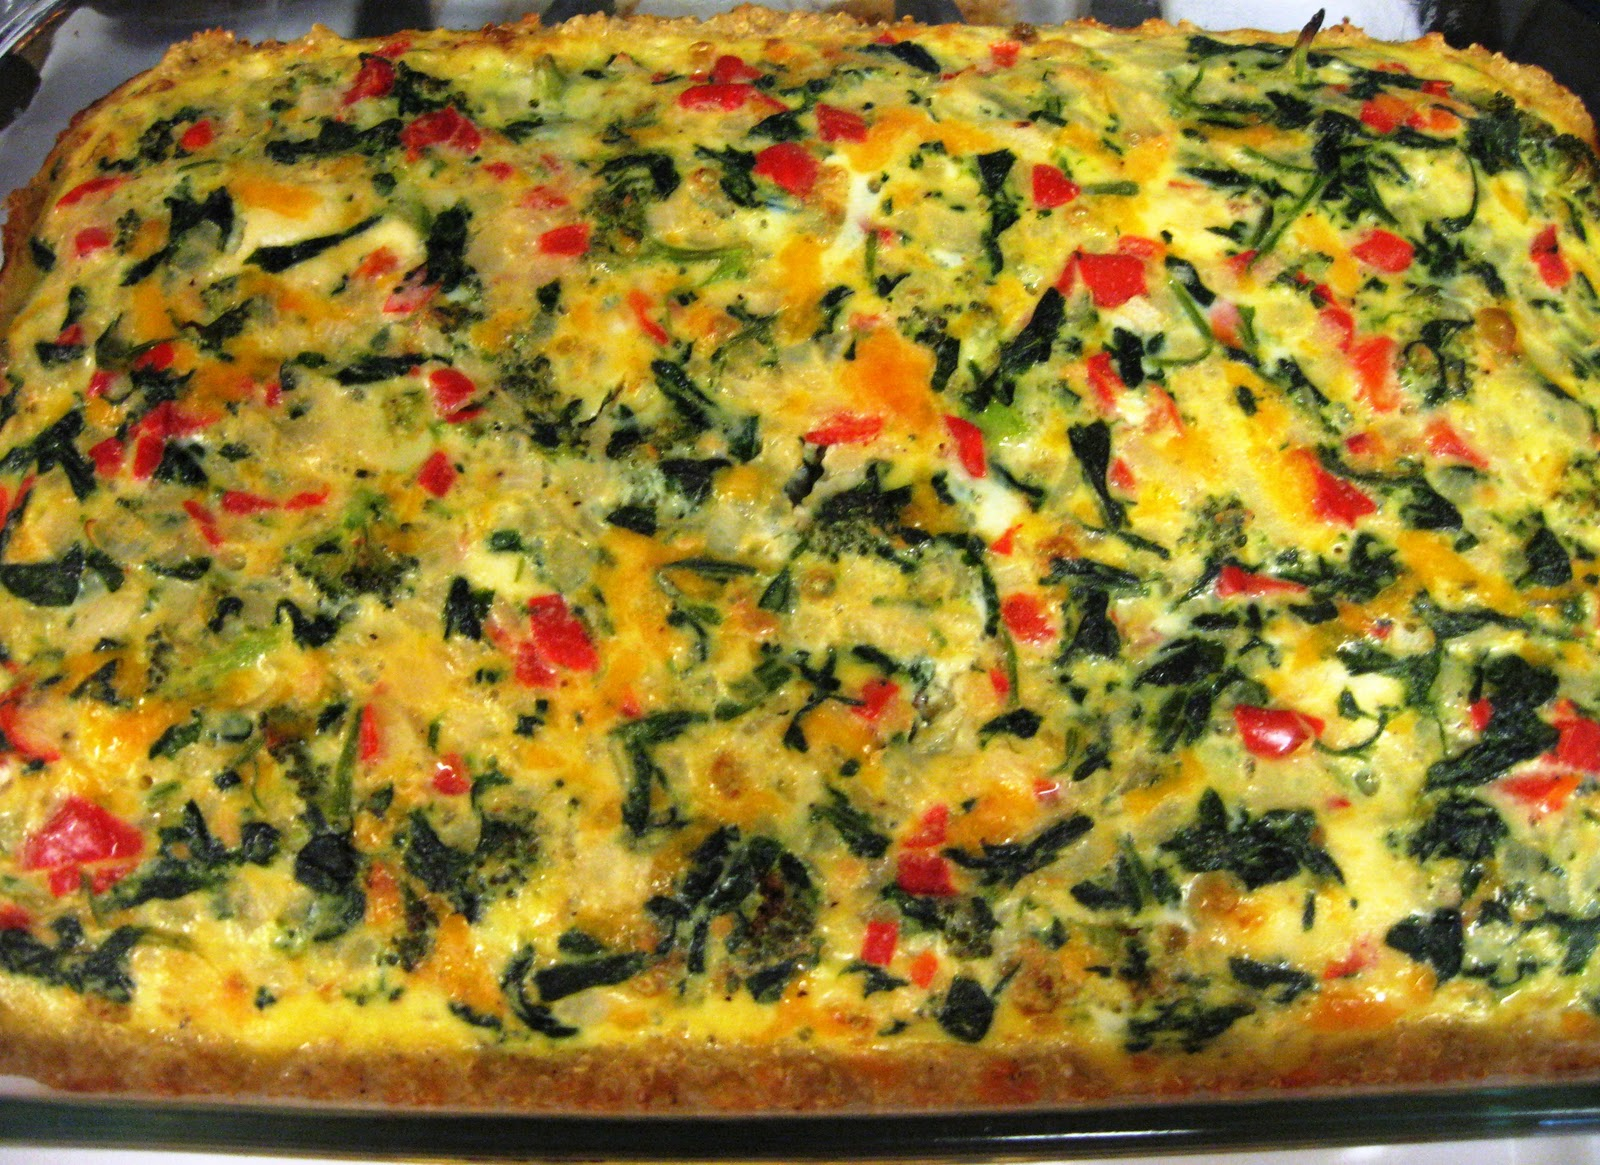 Low fat veggie bake recipe